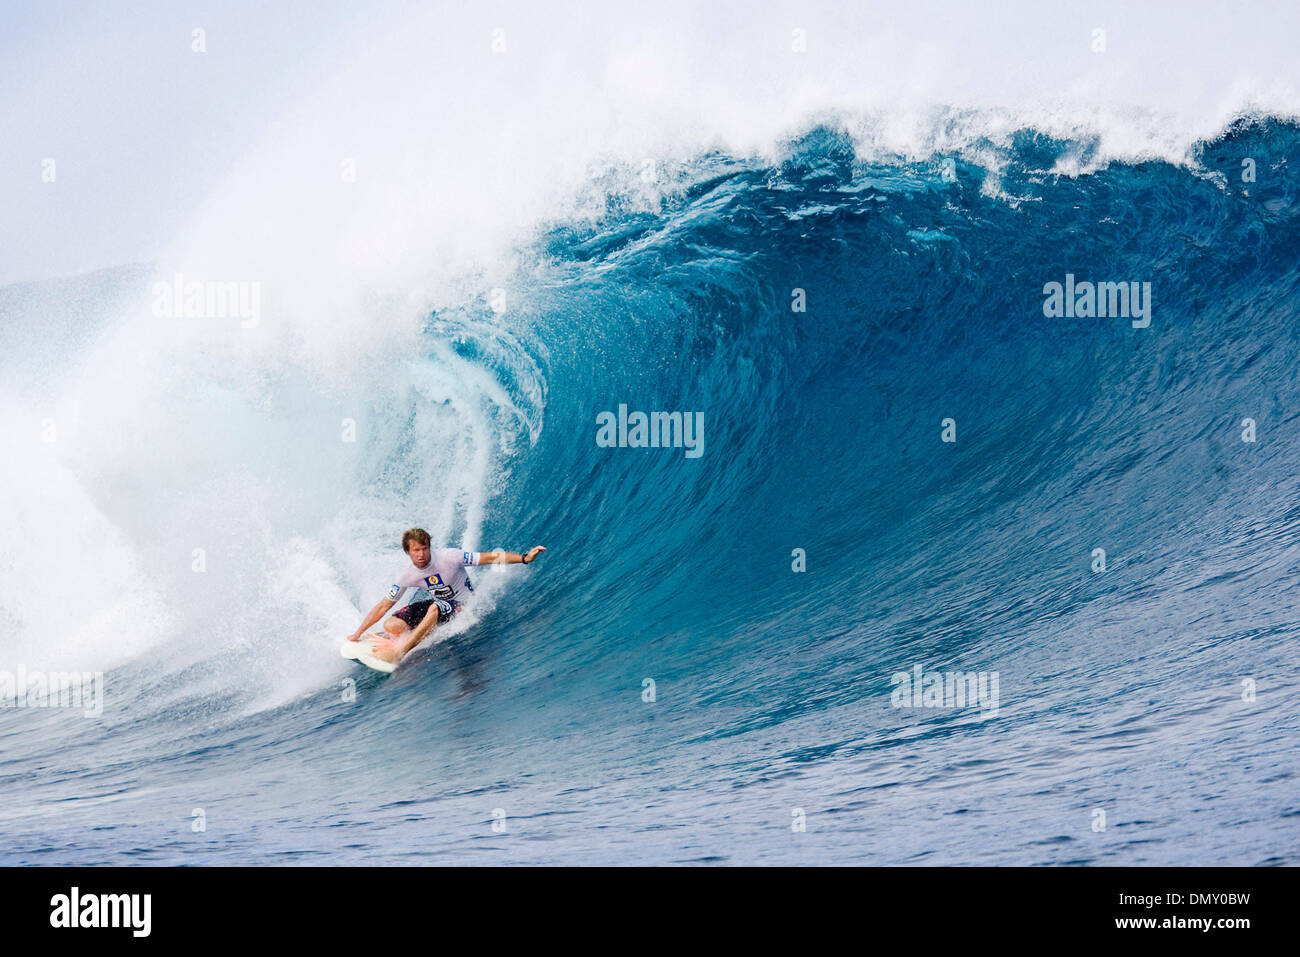 May 23, 2006; Tavarua Island, FIJI; TAJ BURROW (Yallingup, WA, Aus) narrowly beat wildcard Yadin Nicol (WA, Aus) in round two of the Globe WCT Fiji at Cloudbreak today. Burrow advanced to round three by less than a point, eliminating Nicol from the event. The Globe WCT Fiji is the fourth stop on the Fosters Men's ASP World Tour features the top 45 men in the world. The event takes  - Stock Image